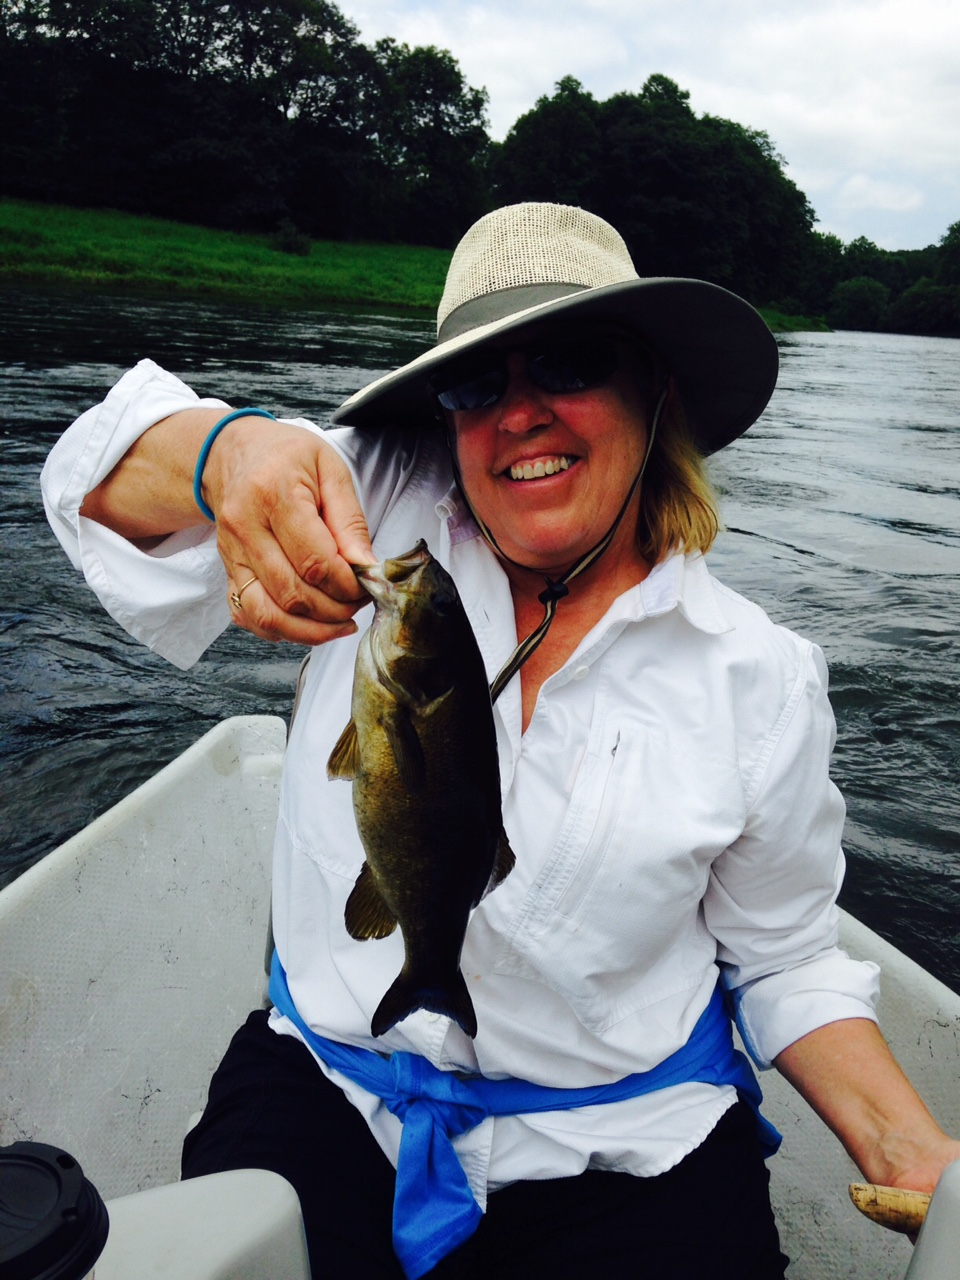 7/18/2015  Allison catches a nice Delaware River smallmouth bass!